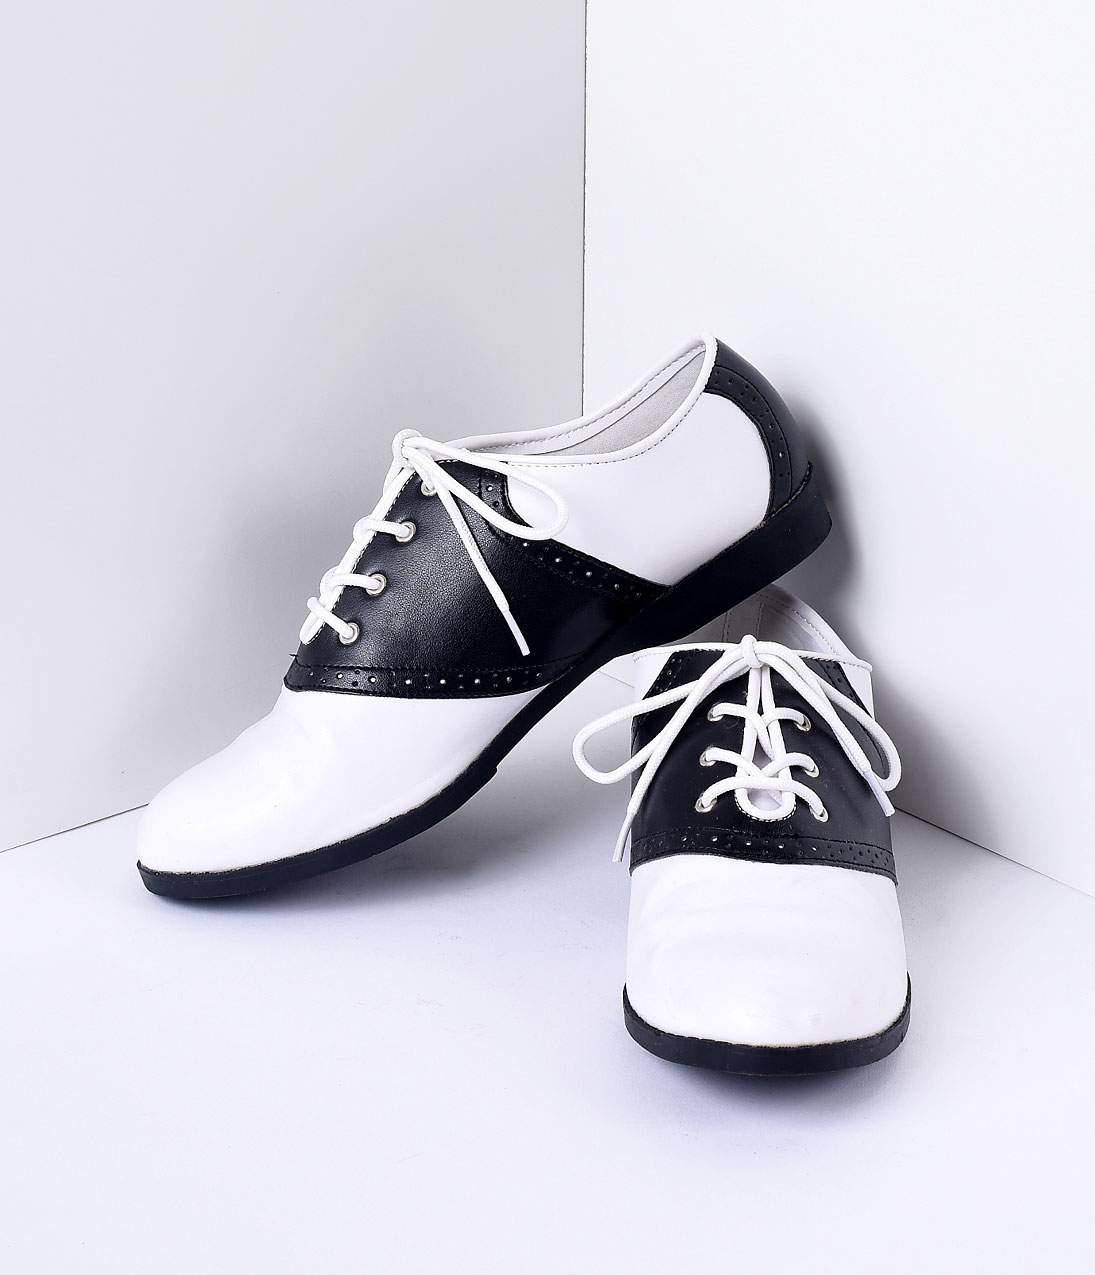 Vintage Style Shoes, Vintage Inspired Shoes Black  White Classic Lace Up Saddle Shoes $48.00 AT vintagedancer.com